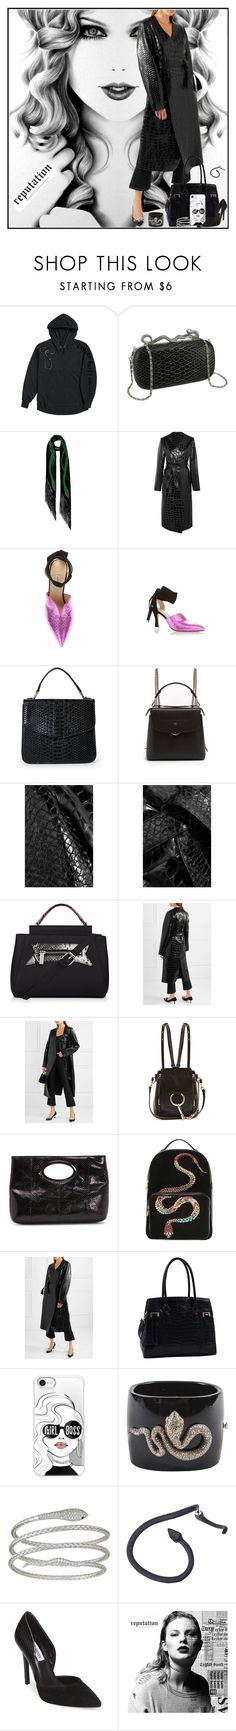 """Taylor Swift All Black"" by yours-styling-best-friend ❤ liked on Polyvore featuring Attico, Urban Expressions, Fendi, Chloé, Donald J Pliner, Roberto Cavalli, MKF Collection, Casetify, Decadence and Steve Madden"